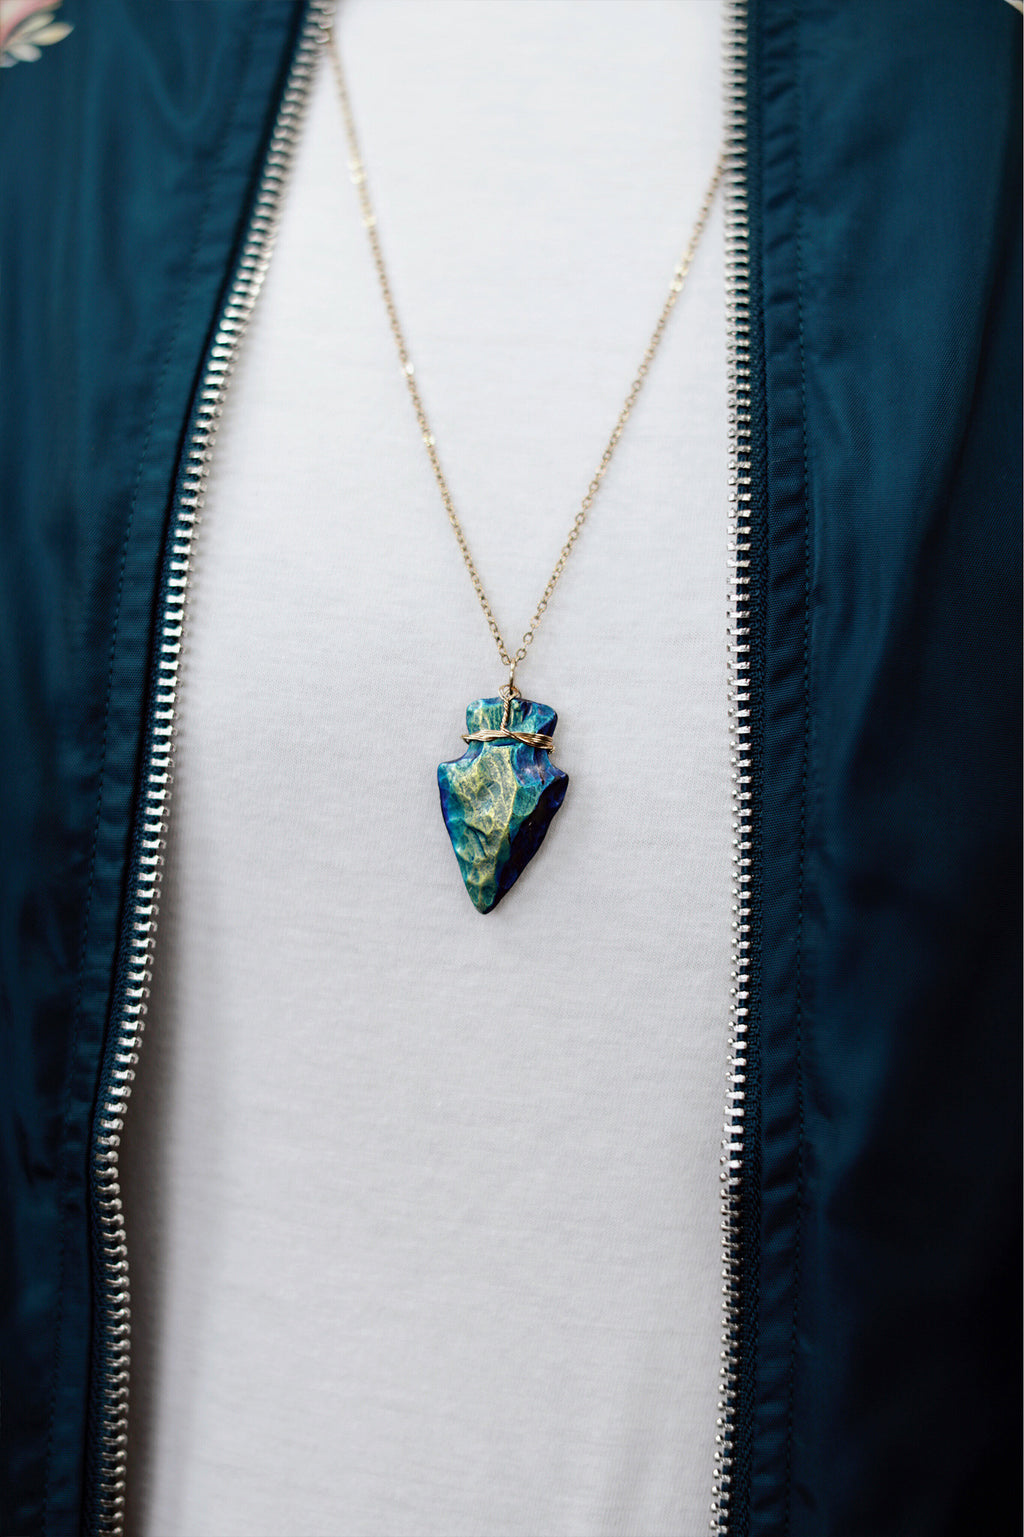 The Rebel Arrowhead Necklace